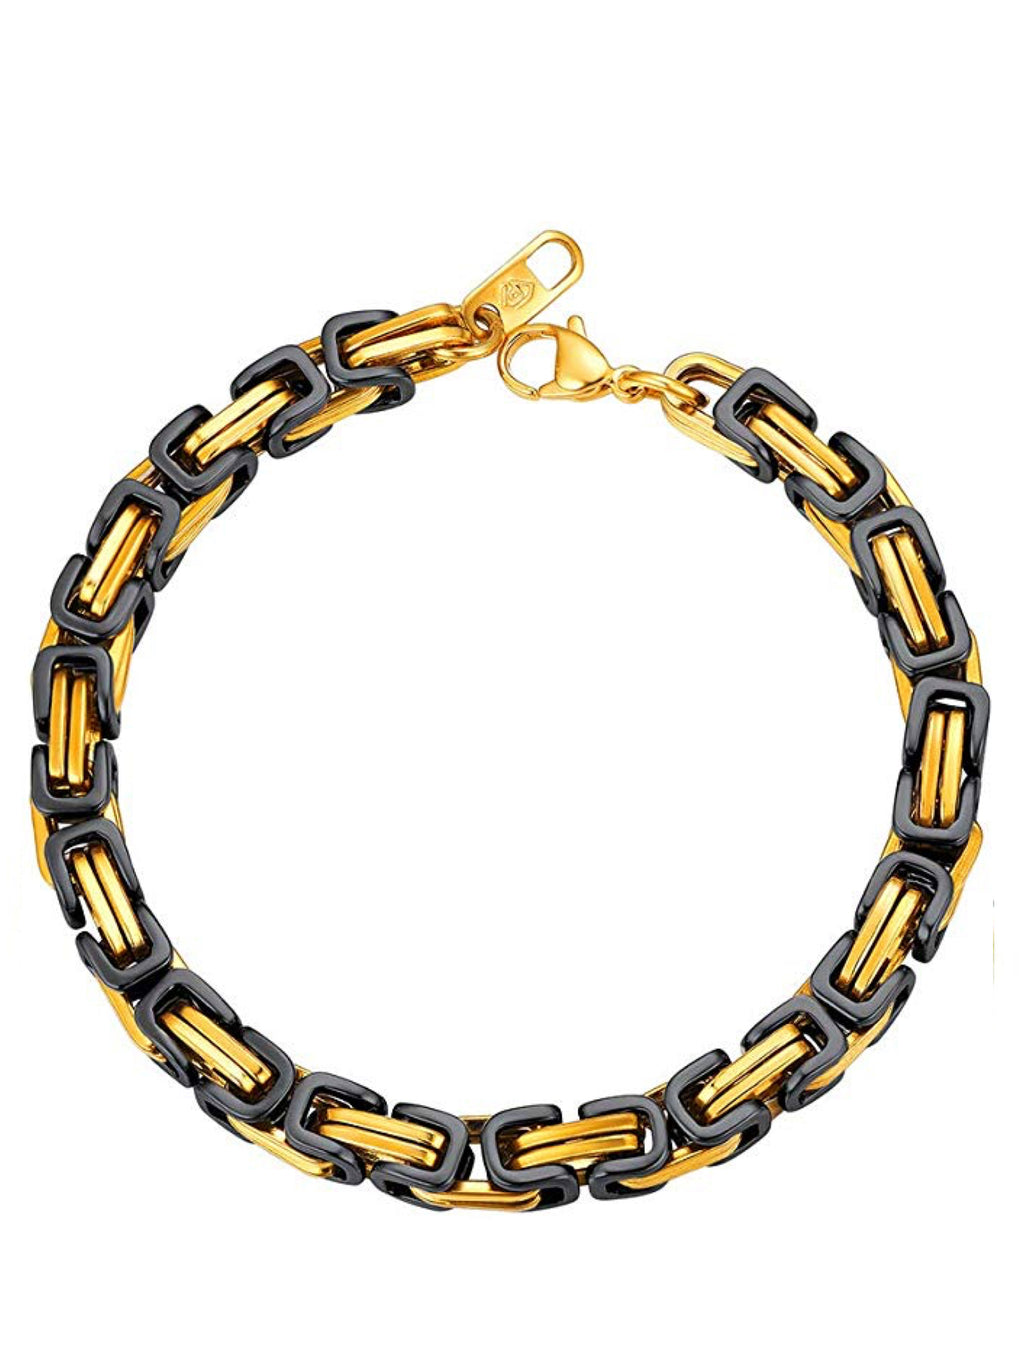 18k Gold & Black two Tone Bracelet